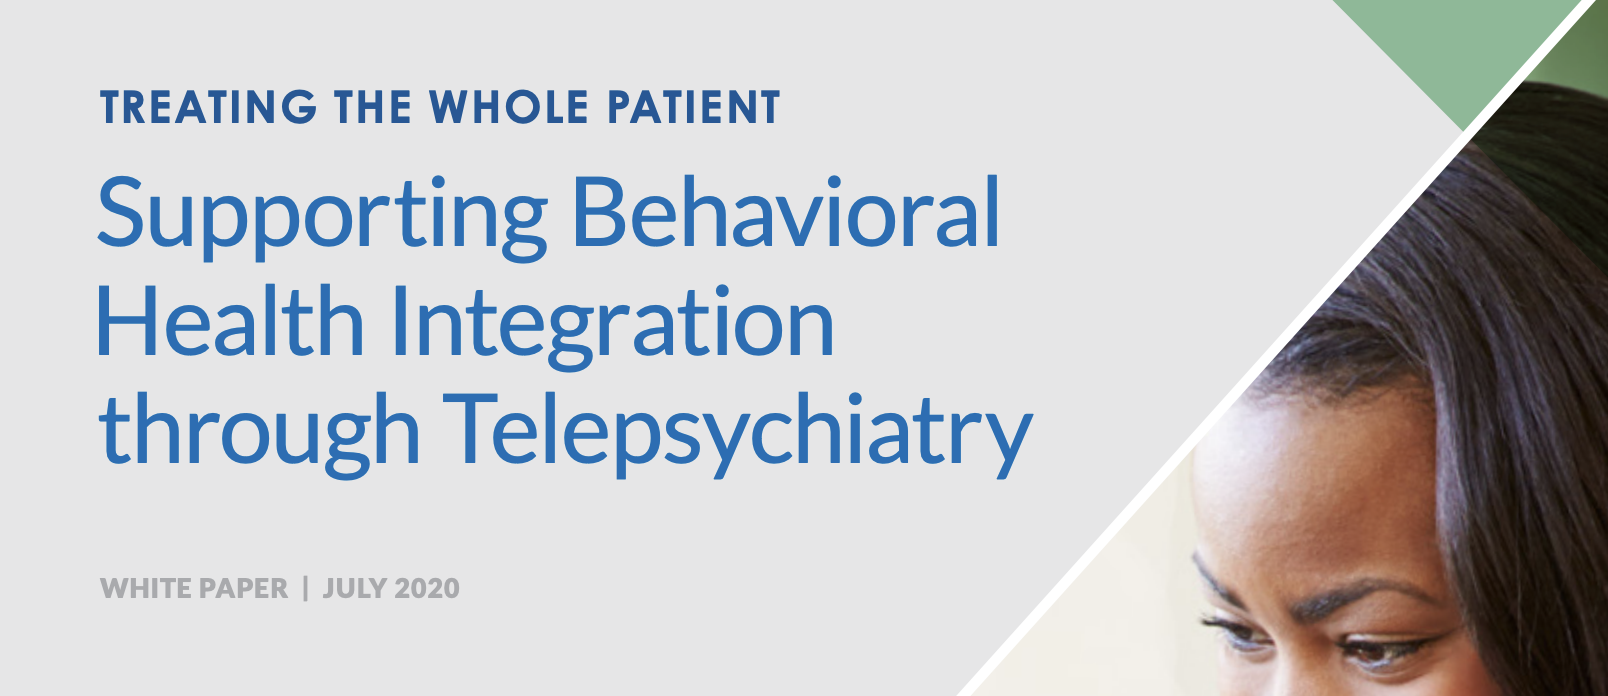 Supporting-Behavioral-Health_integration